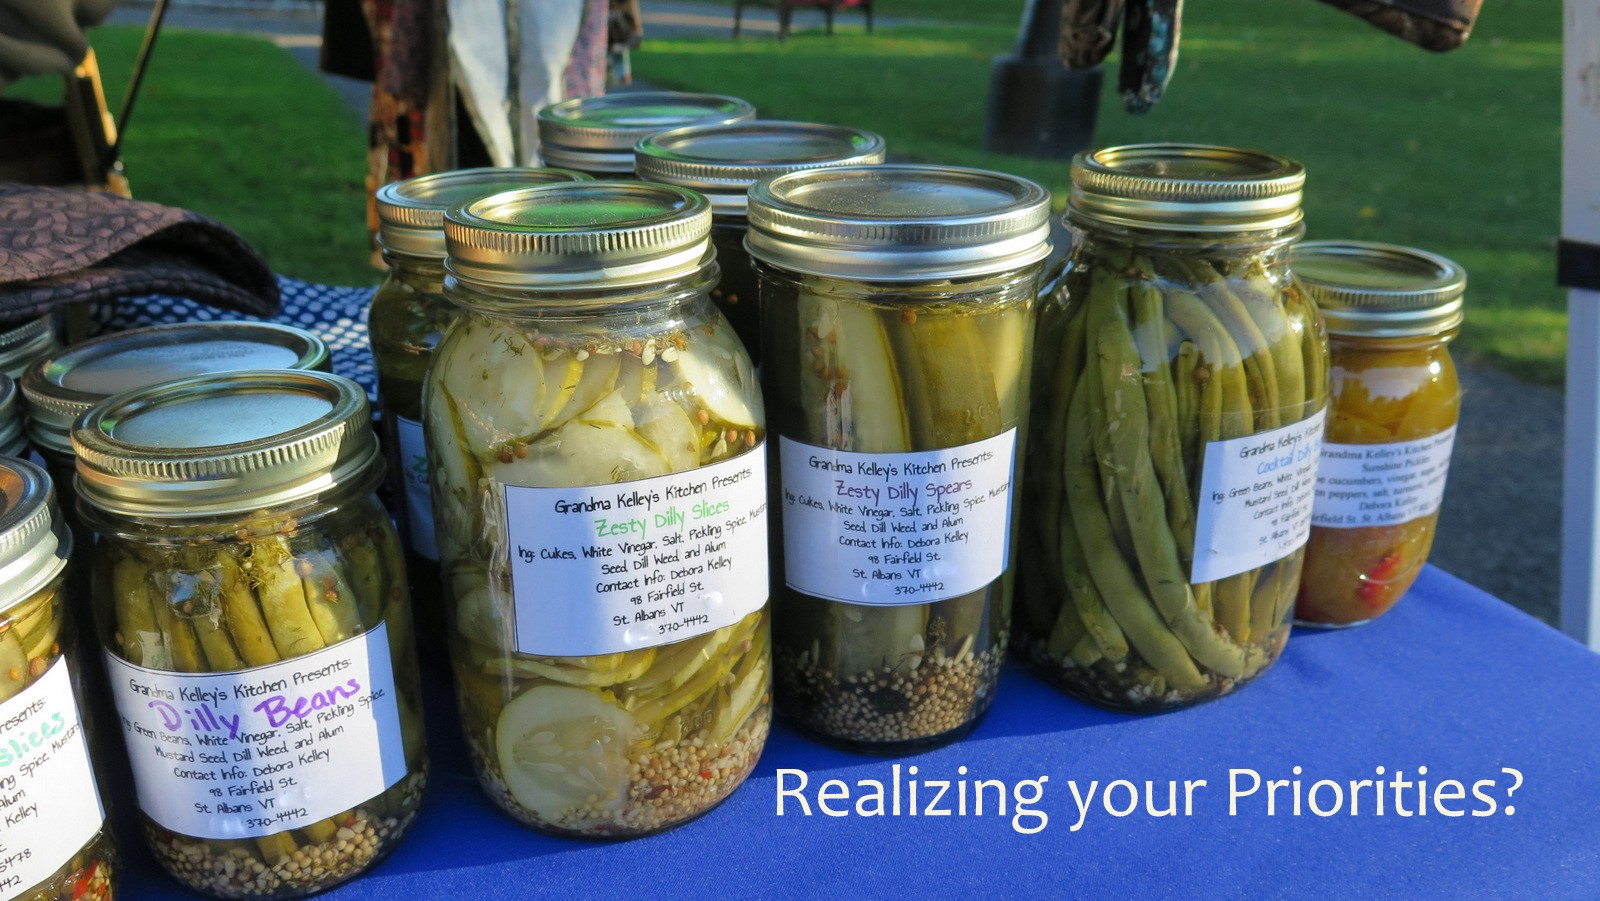 Image: Embrace the pickle jar philosophy for finding your priorities